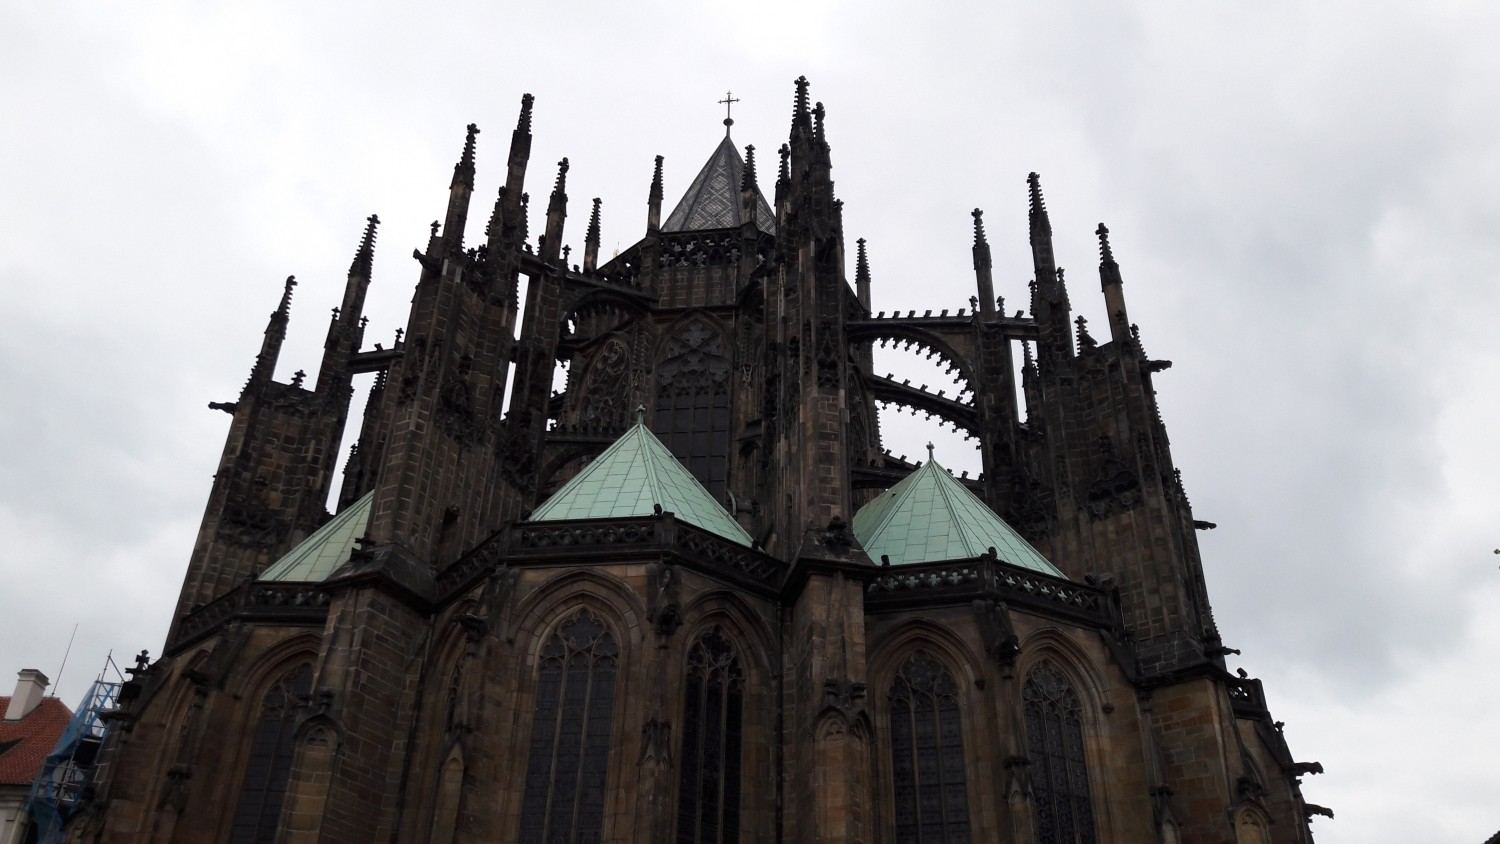 St. Vitus Cathedral in the castle area